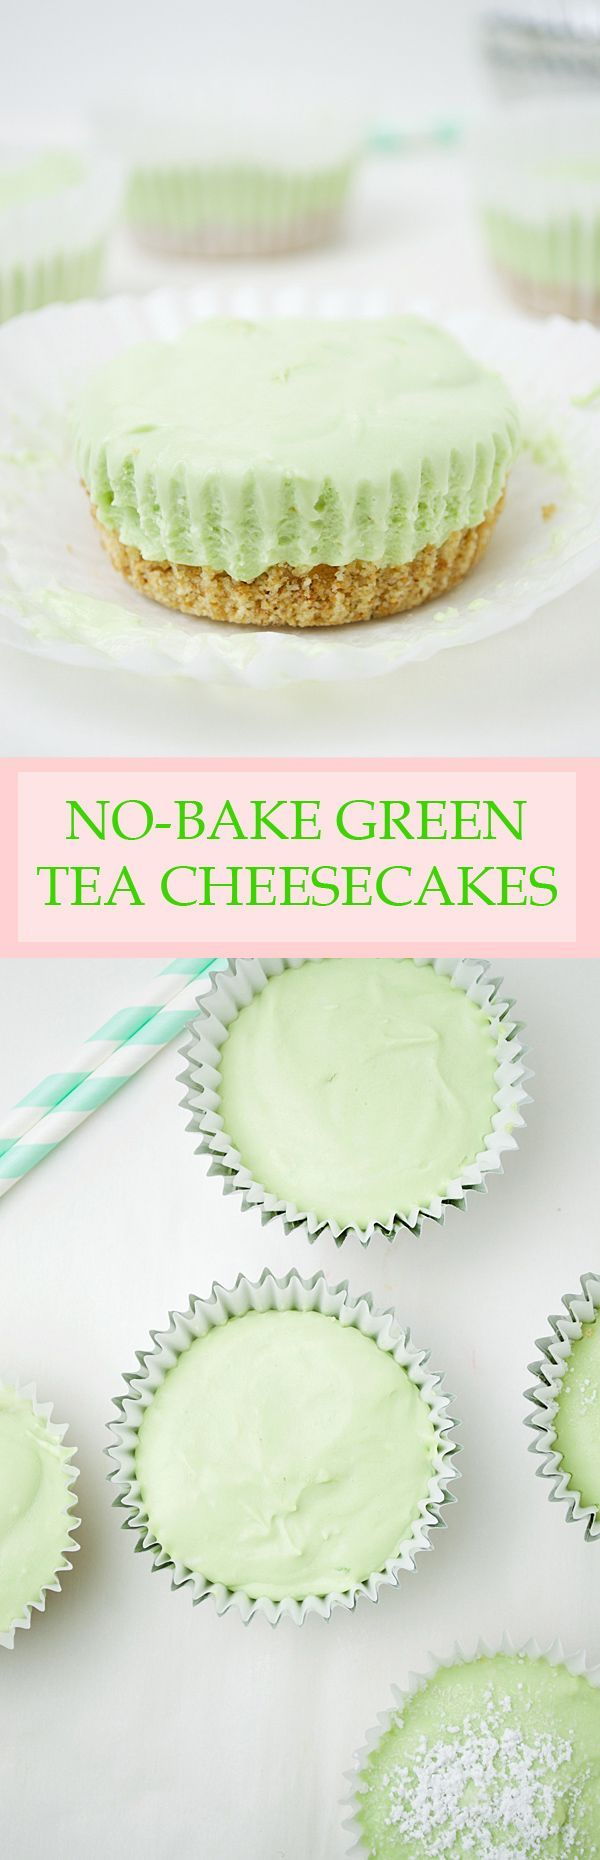 No-Bake Mini Green Tea Cheesecakes- no oven required for these creamy, light, and perfectly sweet matcha green tea cheesecakes! (scheduled via http://www.tailwindapp.com?utm_source=pinterest&utm_medium=twpin&utm_content=post25804272&utm_campaign=scheduler_attribution)